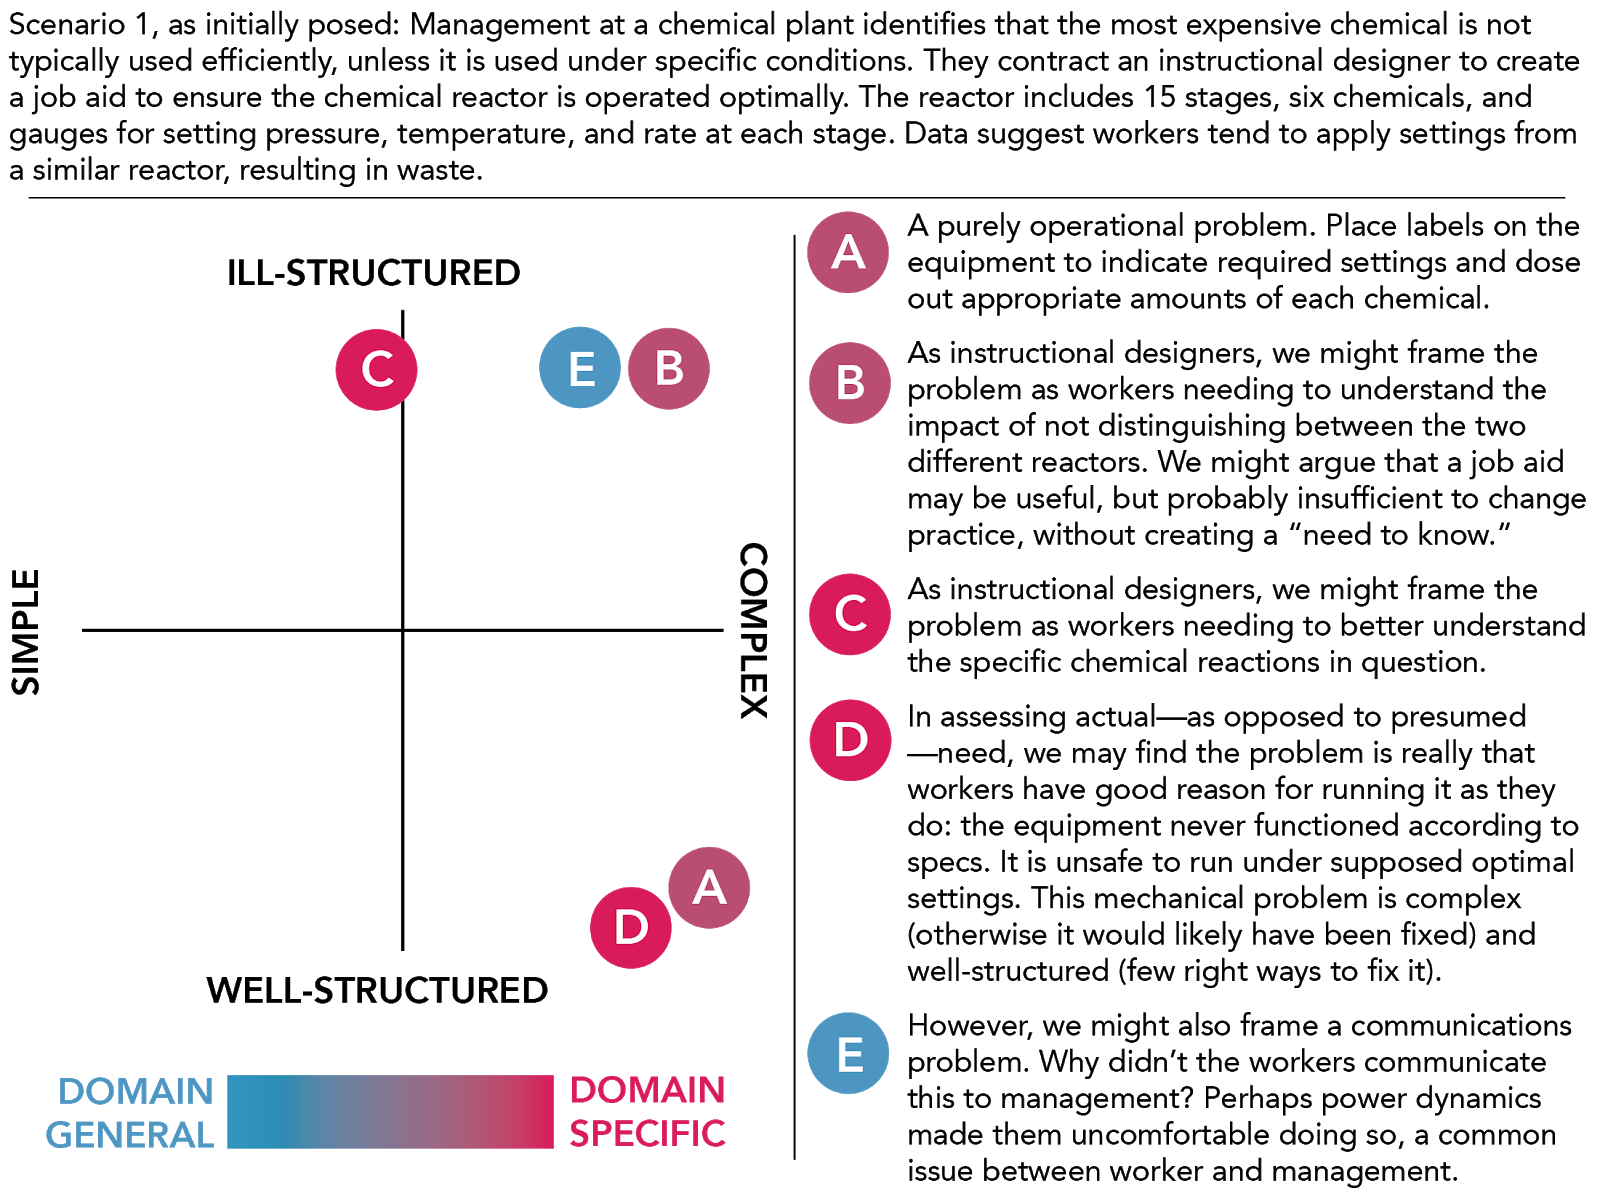 A graph showing the relationship between problem structure, complexity, and domain specificity.